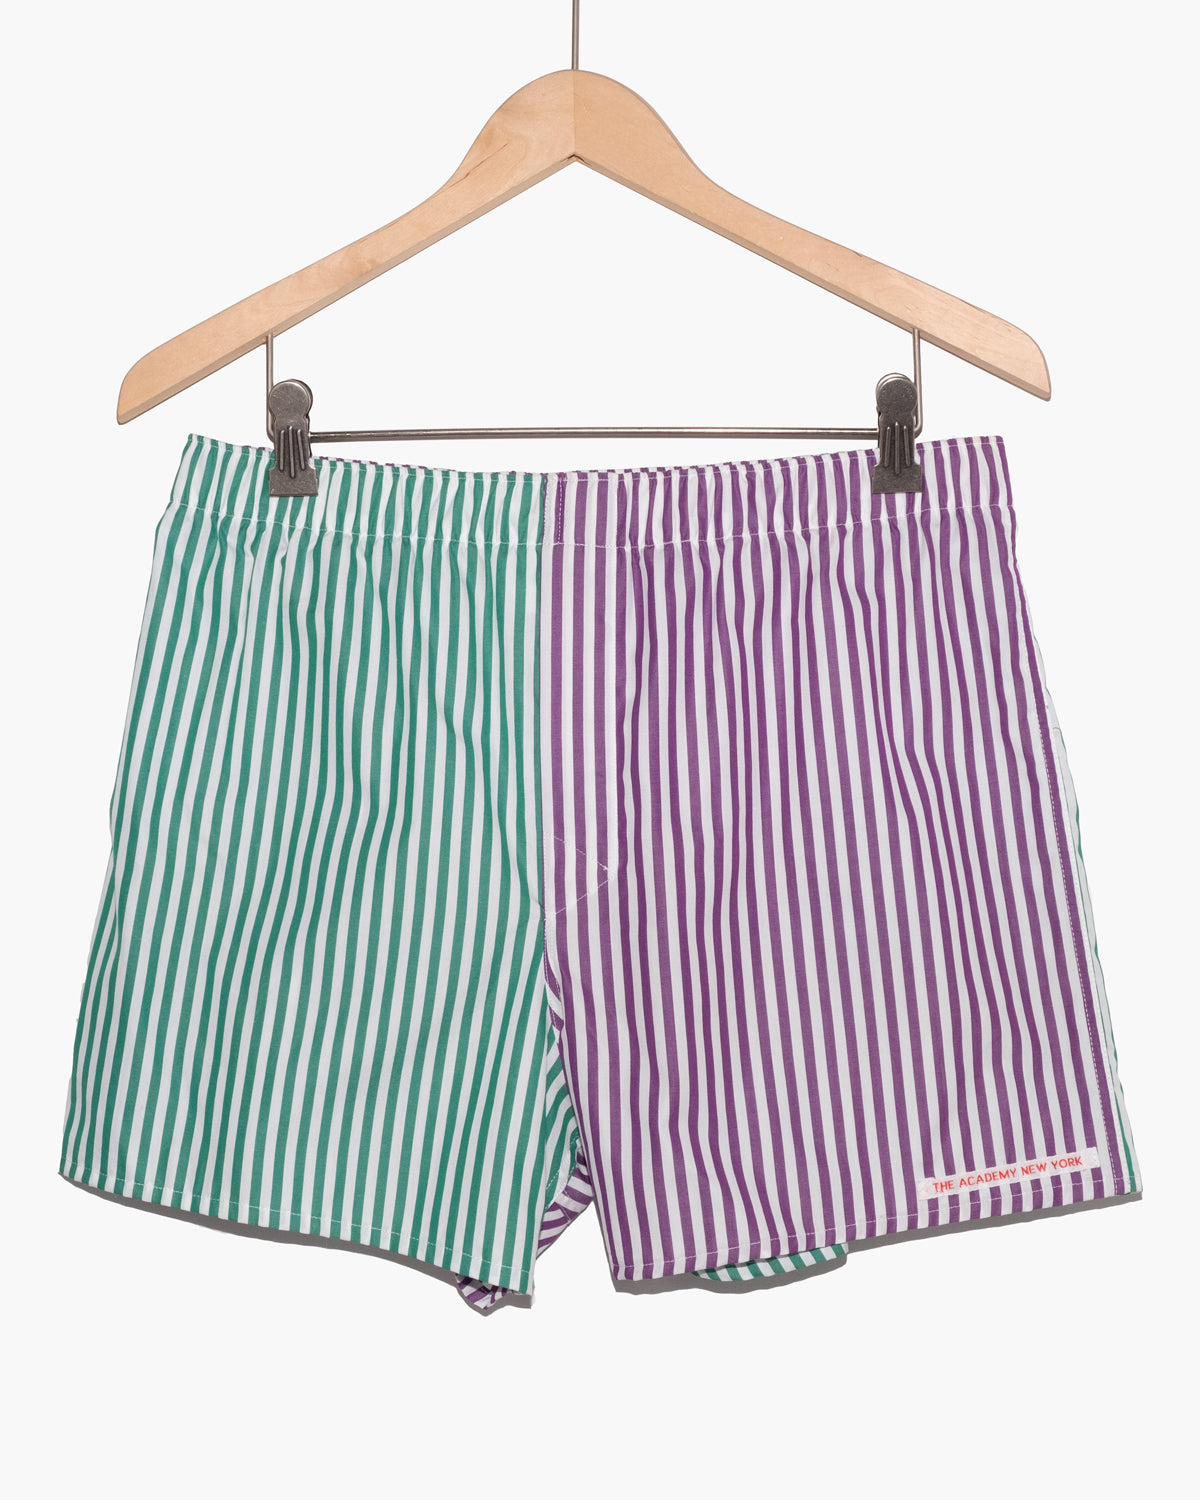 The Academy New York off court green and purple striped boxer shorts. (front)